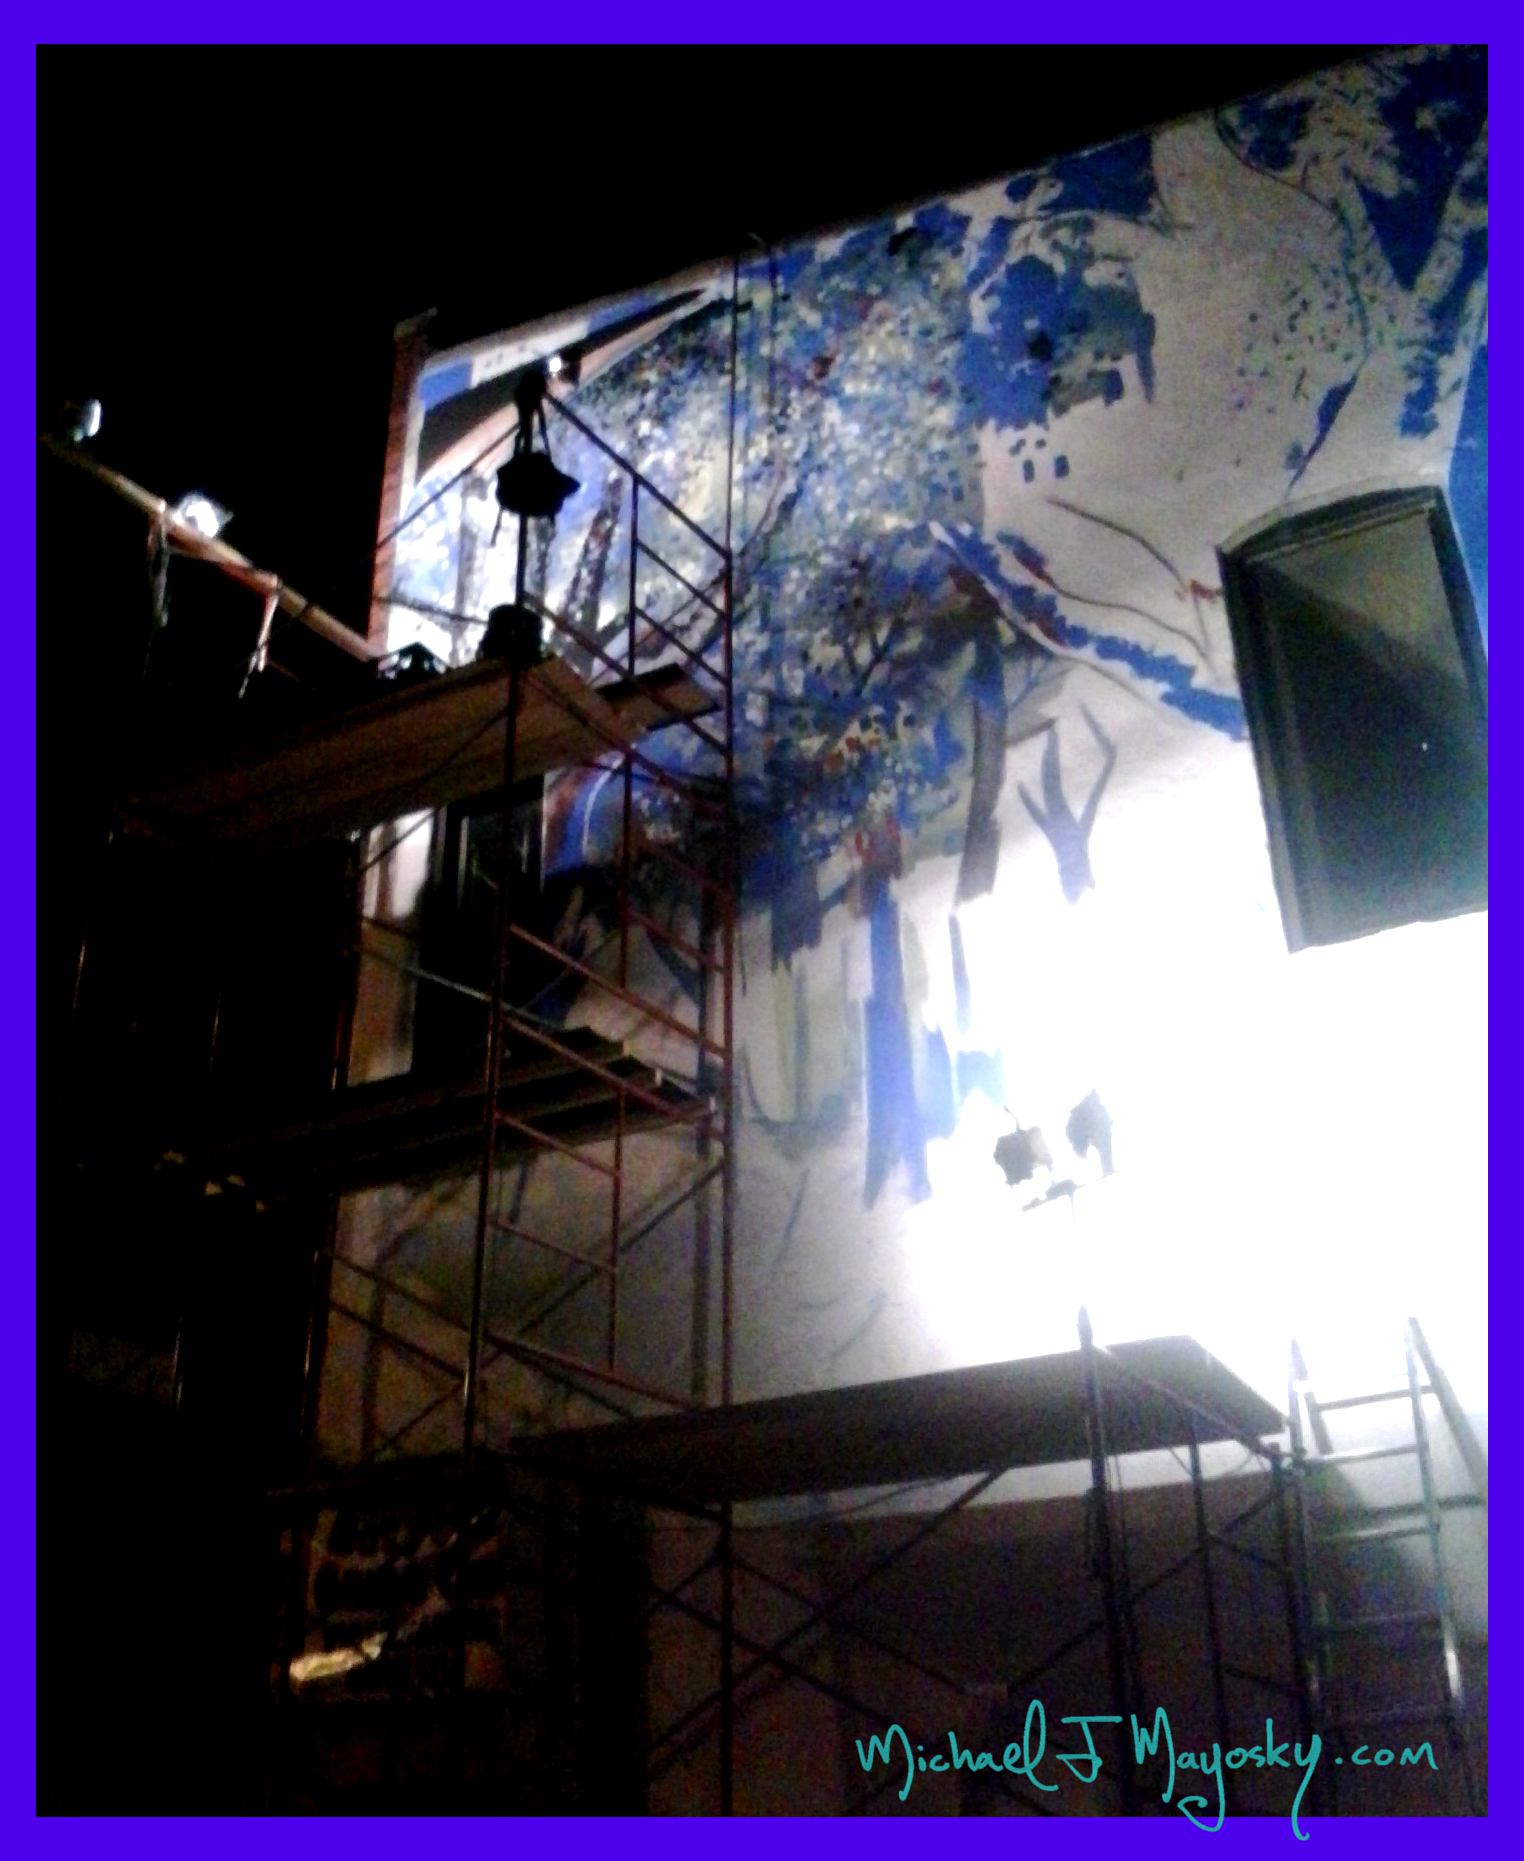 Paint By Number Wall Murals The Lincoln Wall Michael J Mayosky